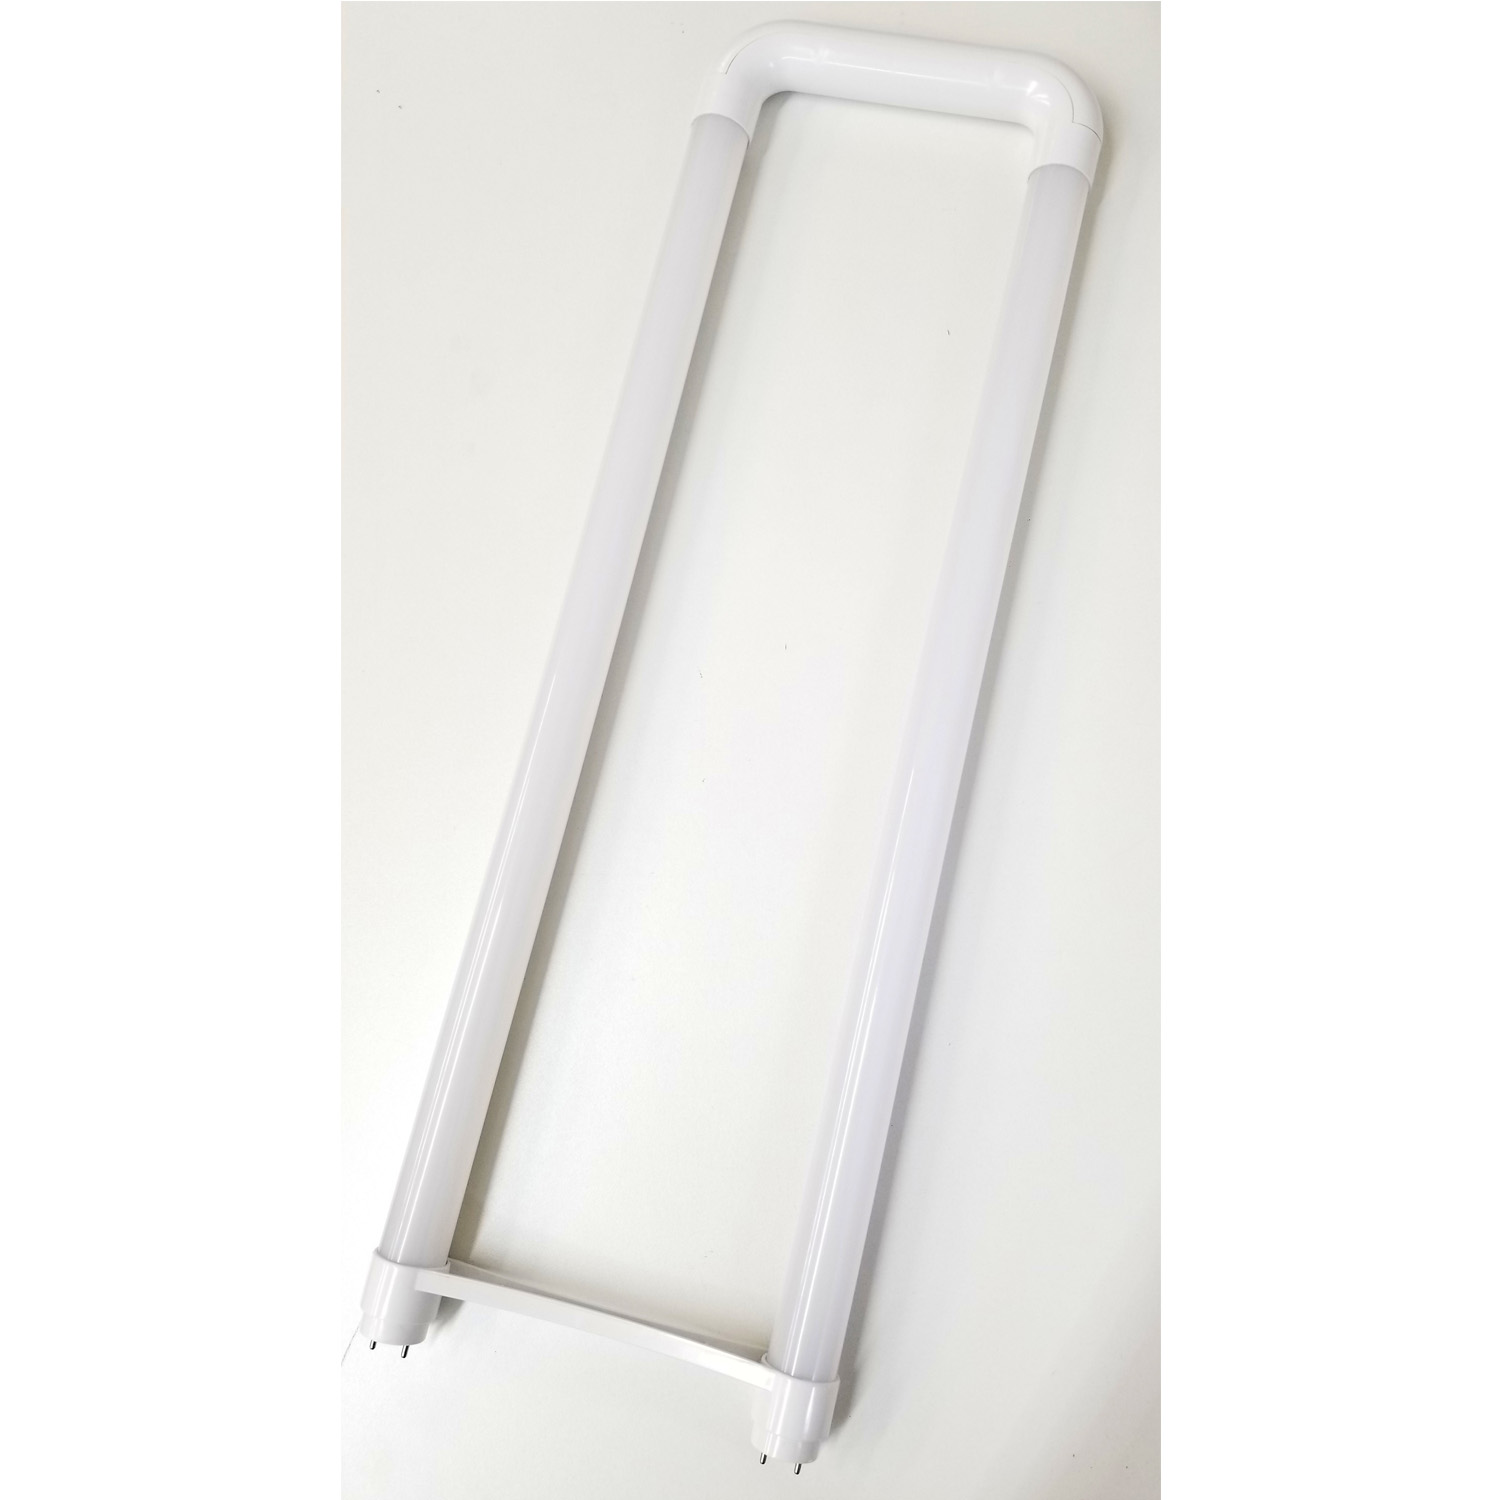 T12 Fluorescent Light Fixtures U Bend T12 Warm White 2700k Led Lamp Directly Relamps Fluorescent Bulb Fb40t12 Without Rewiring Or Modification